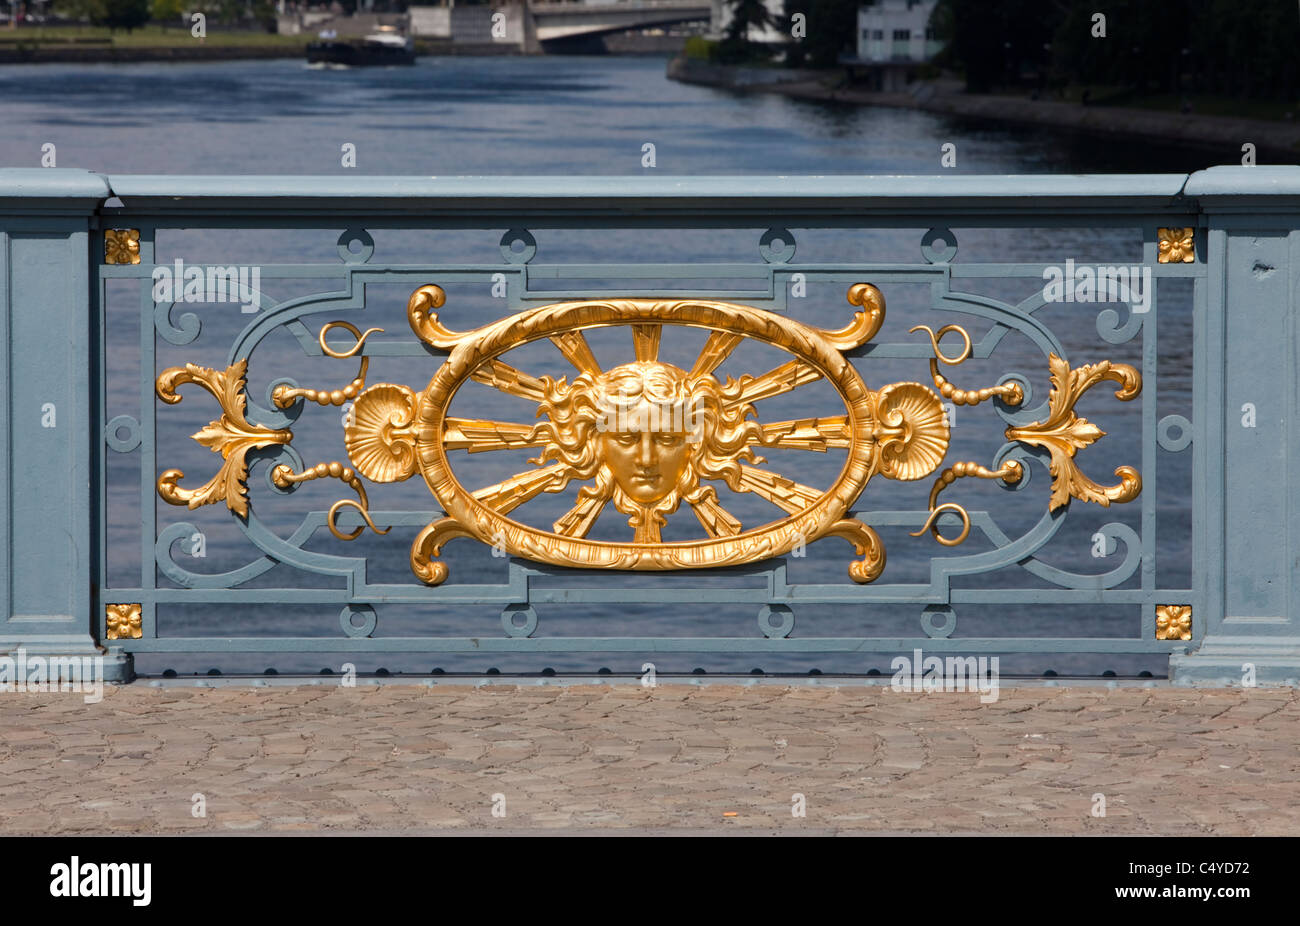 Pont de Fragnée bridge over the Meuse, Liège, Wallonie, Belgium, Europe - Stock Image